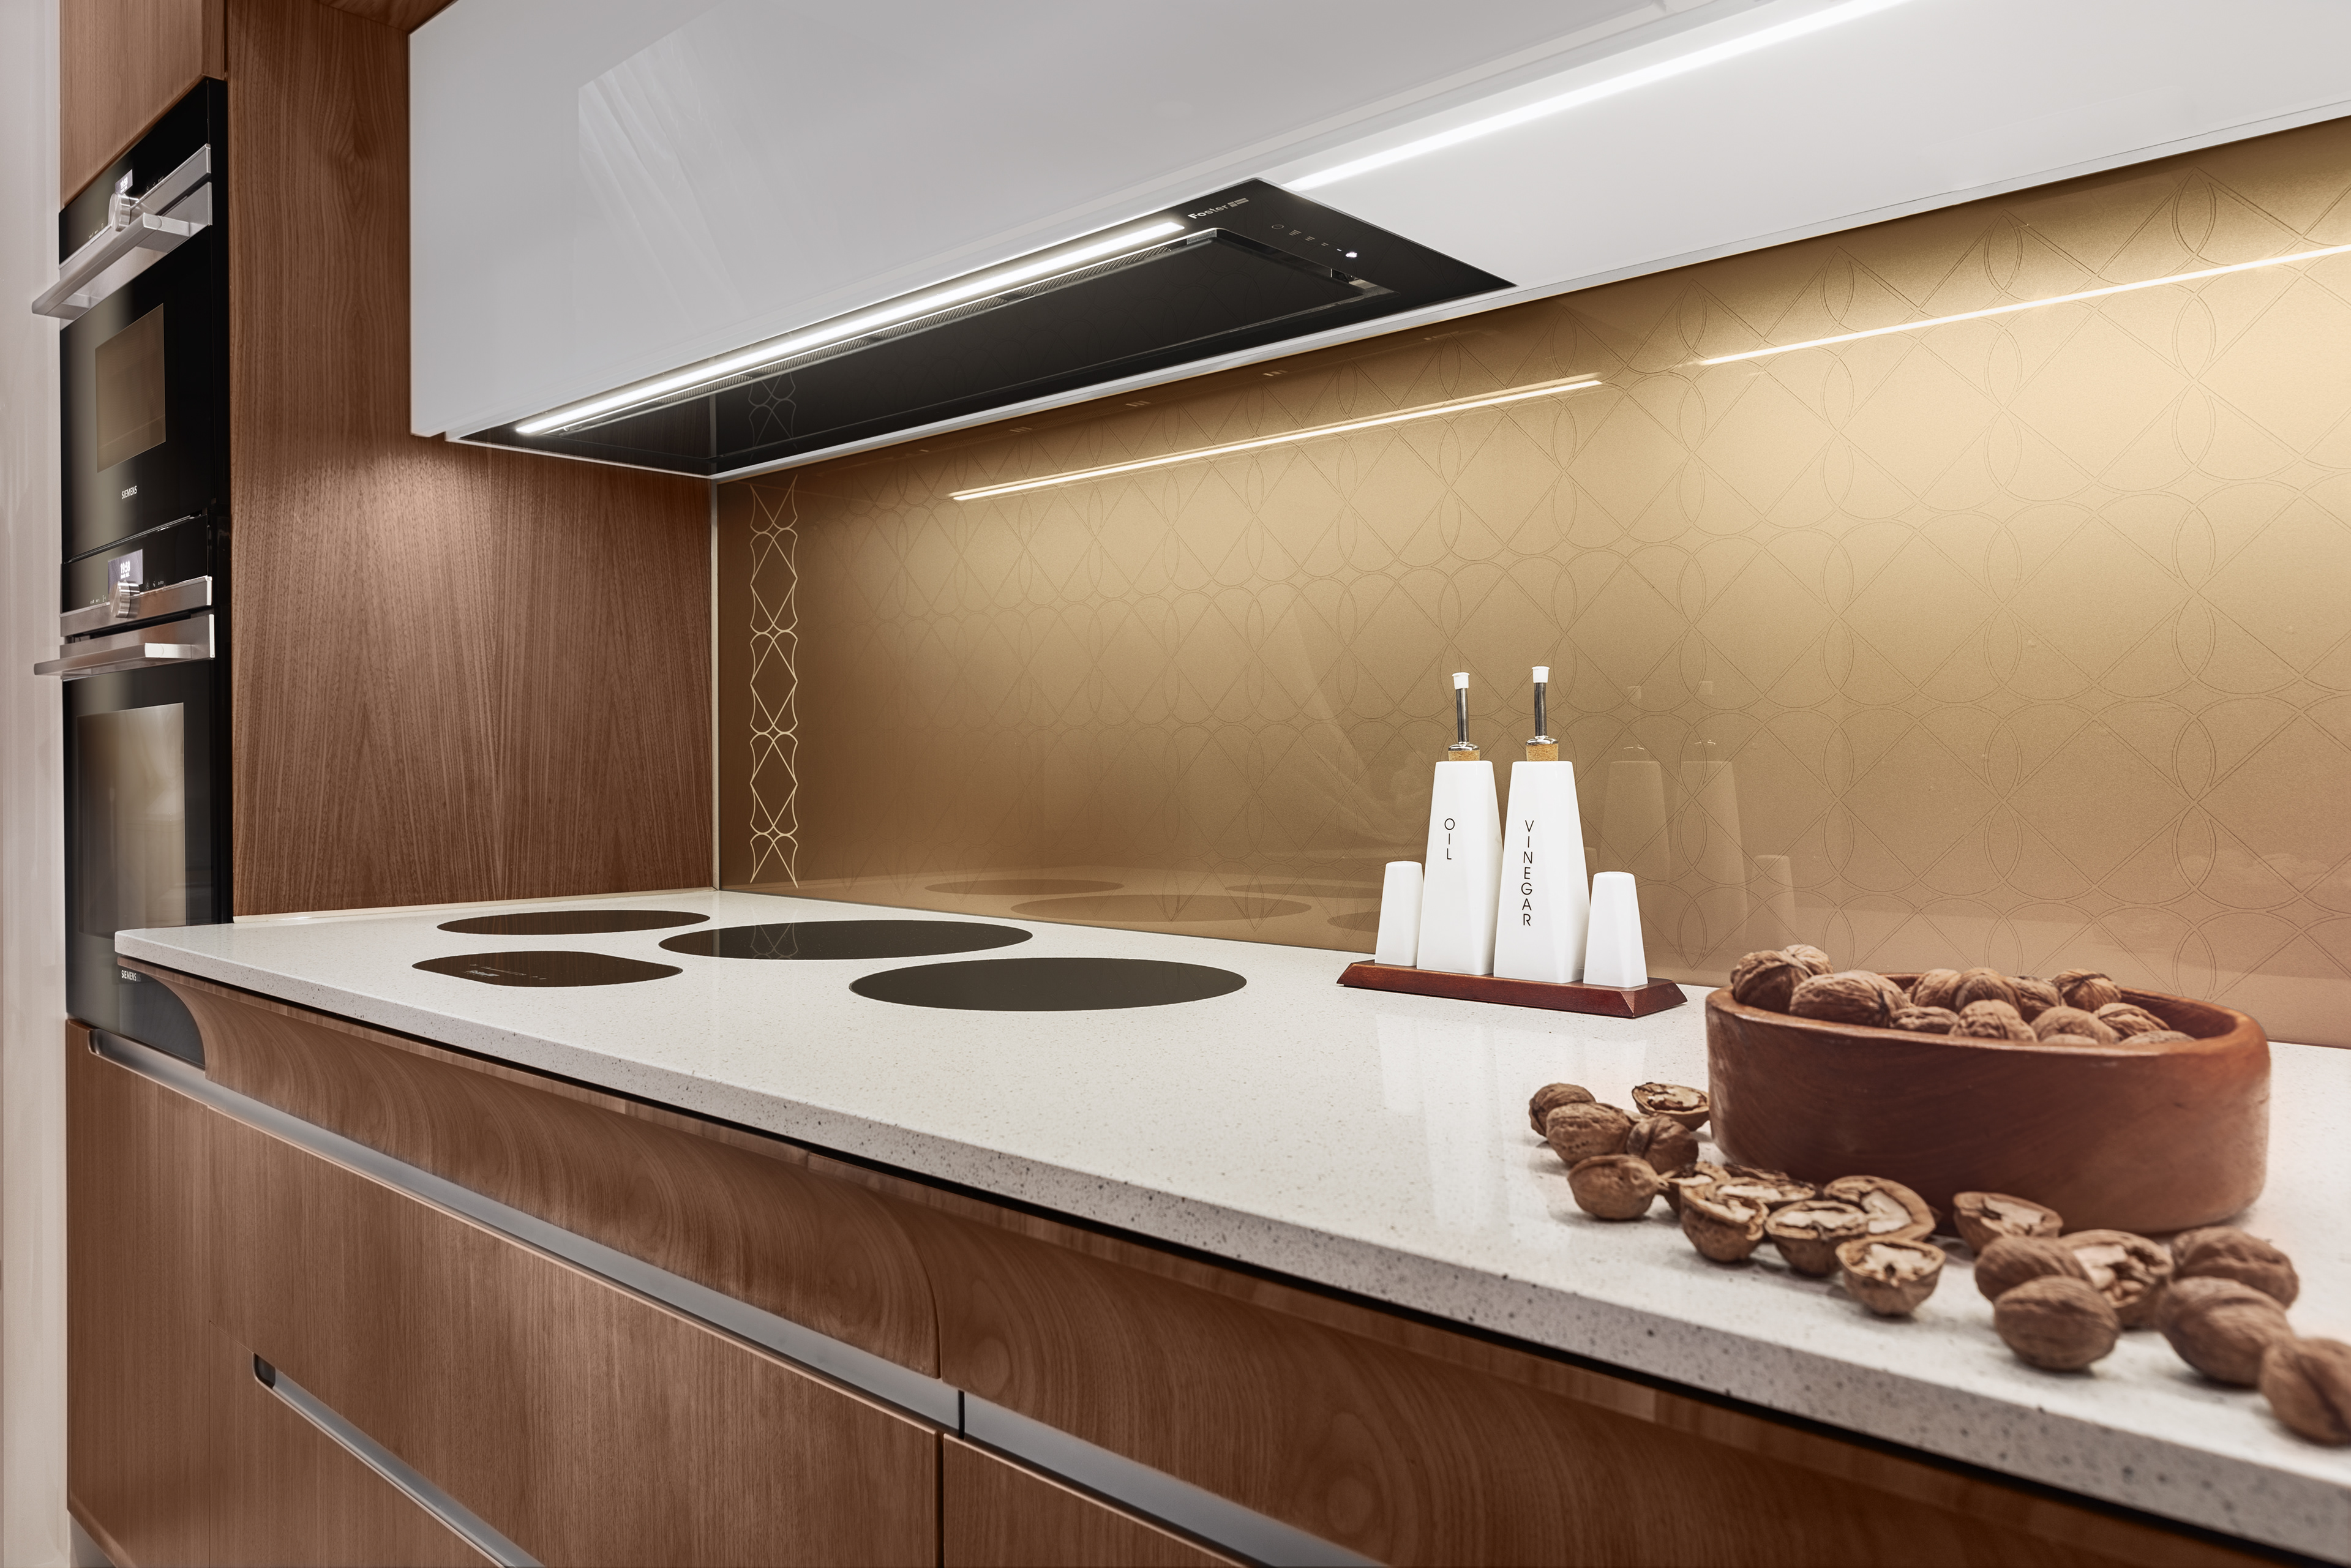 Walnut veneer kitchen designing set photographing and editing for advertising